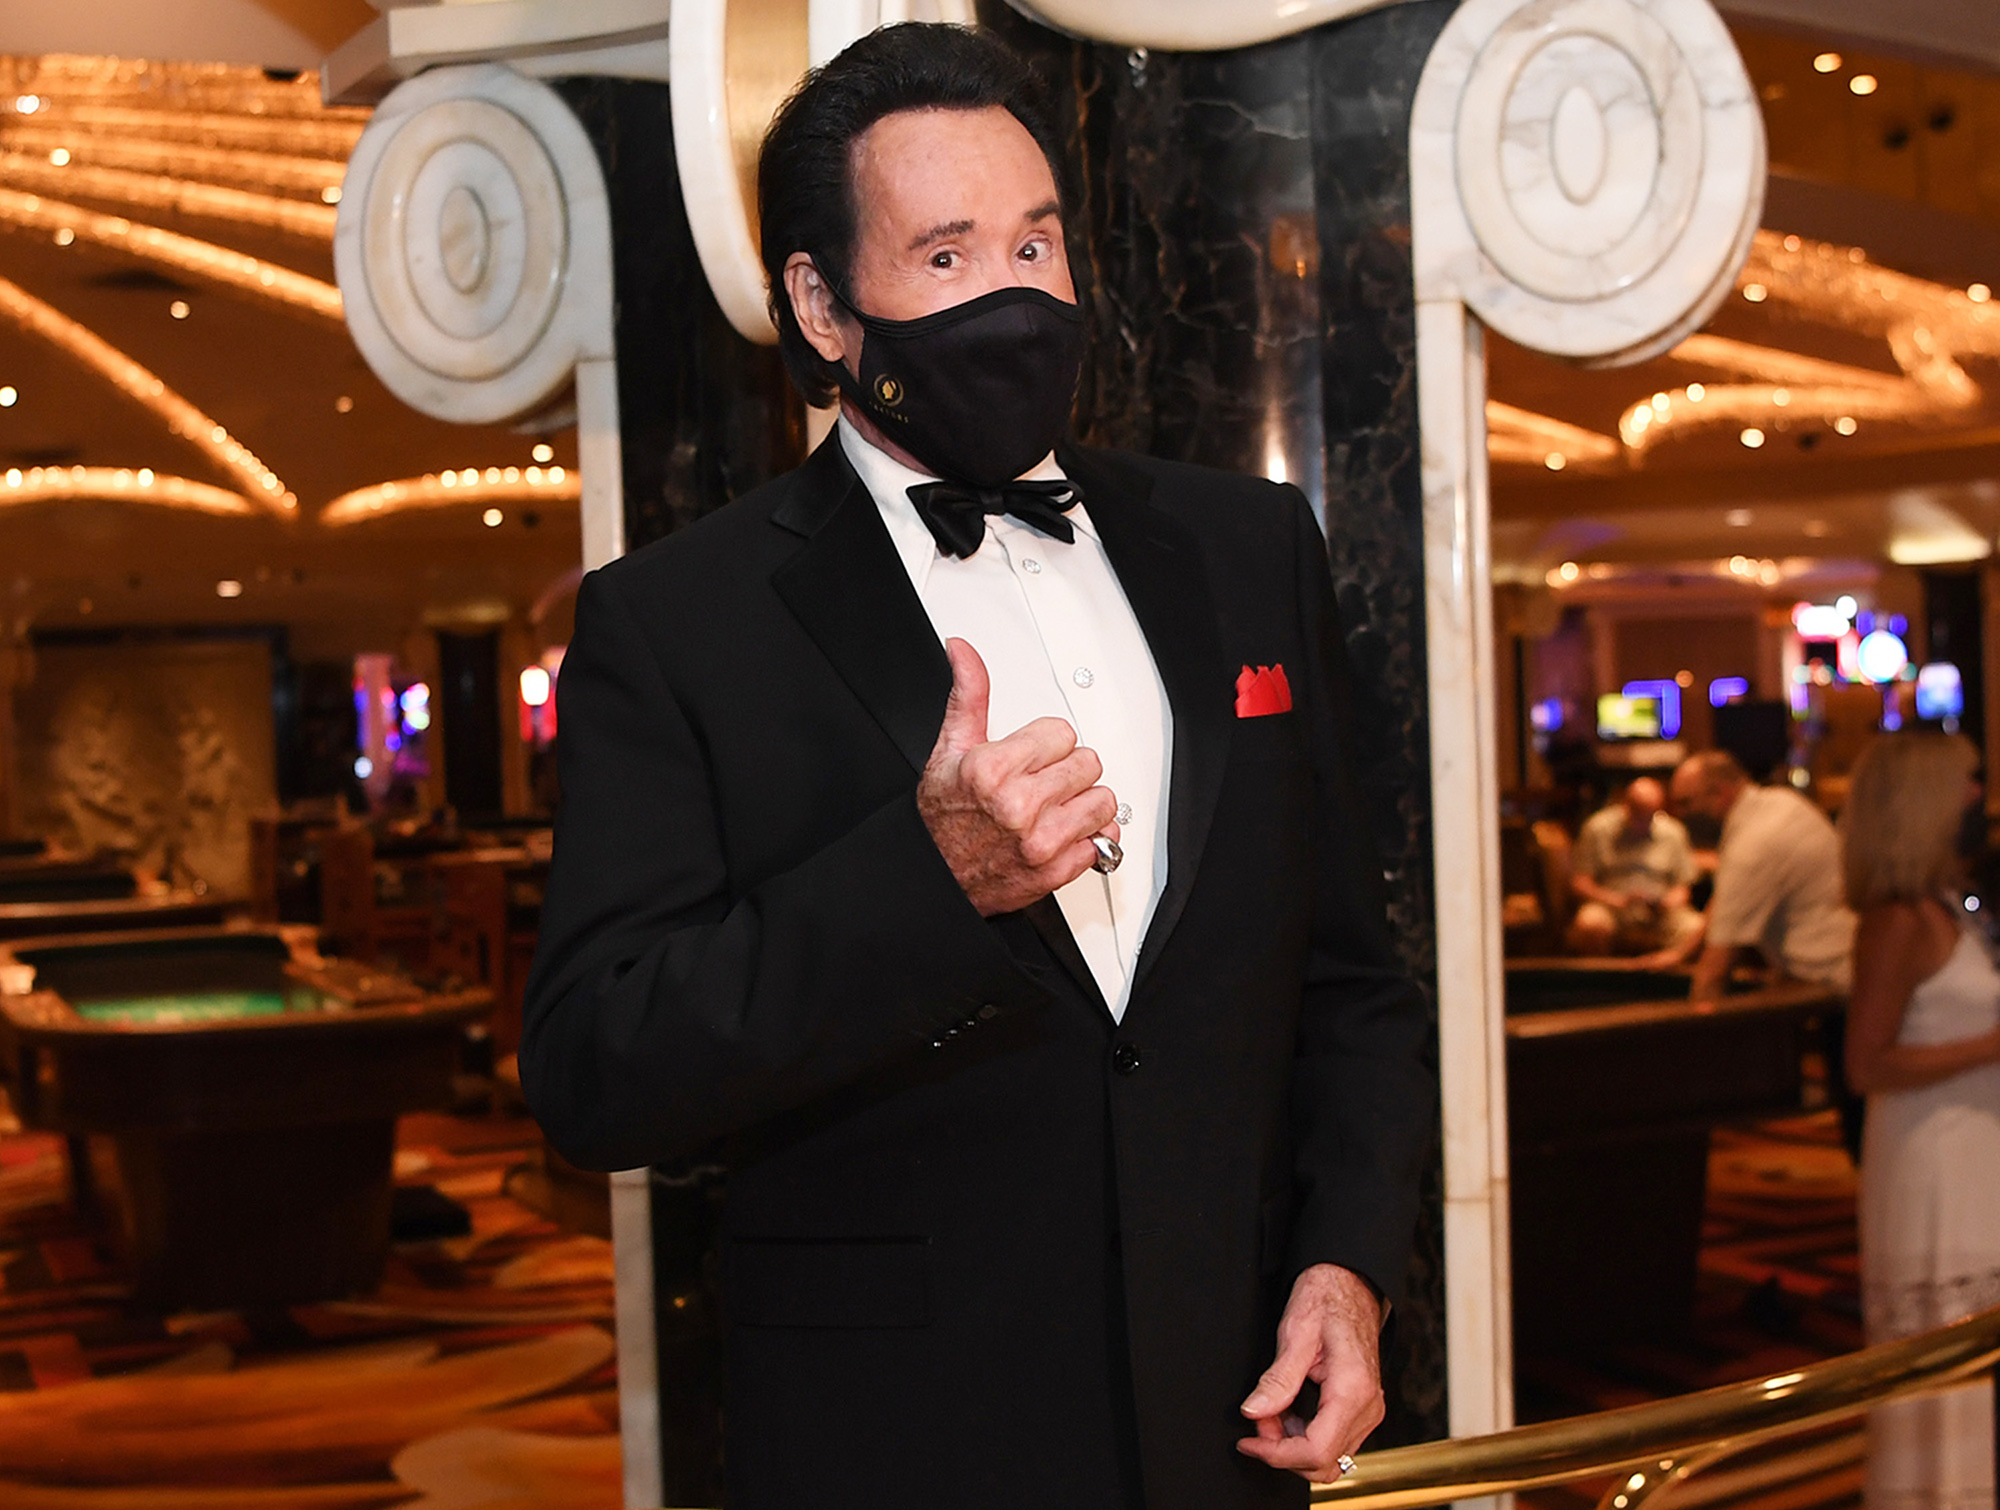 Wayne Newton poses for a photo at the reopening of Caesars Palace on June 4, 2020 in Las Vegas, Nevada